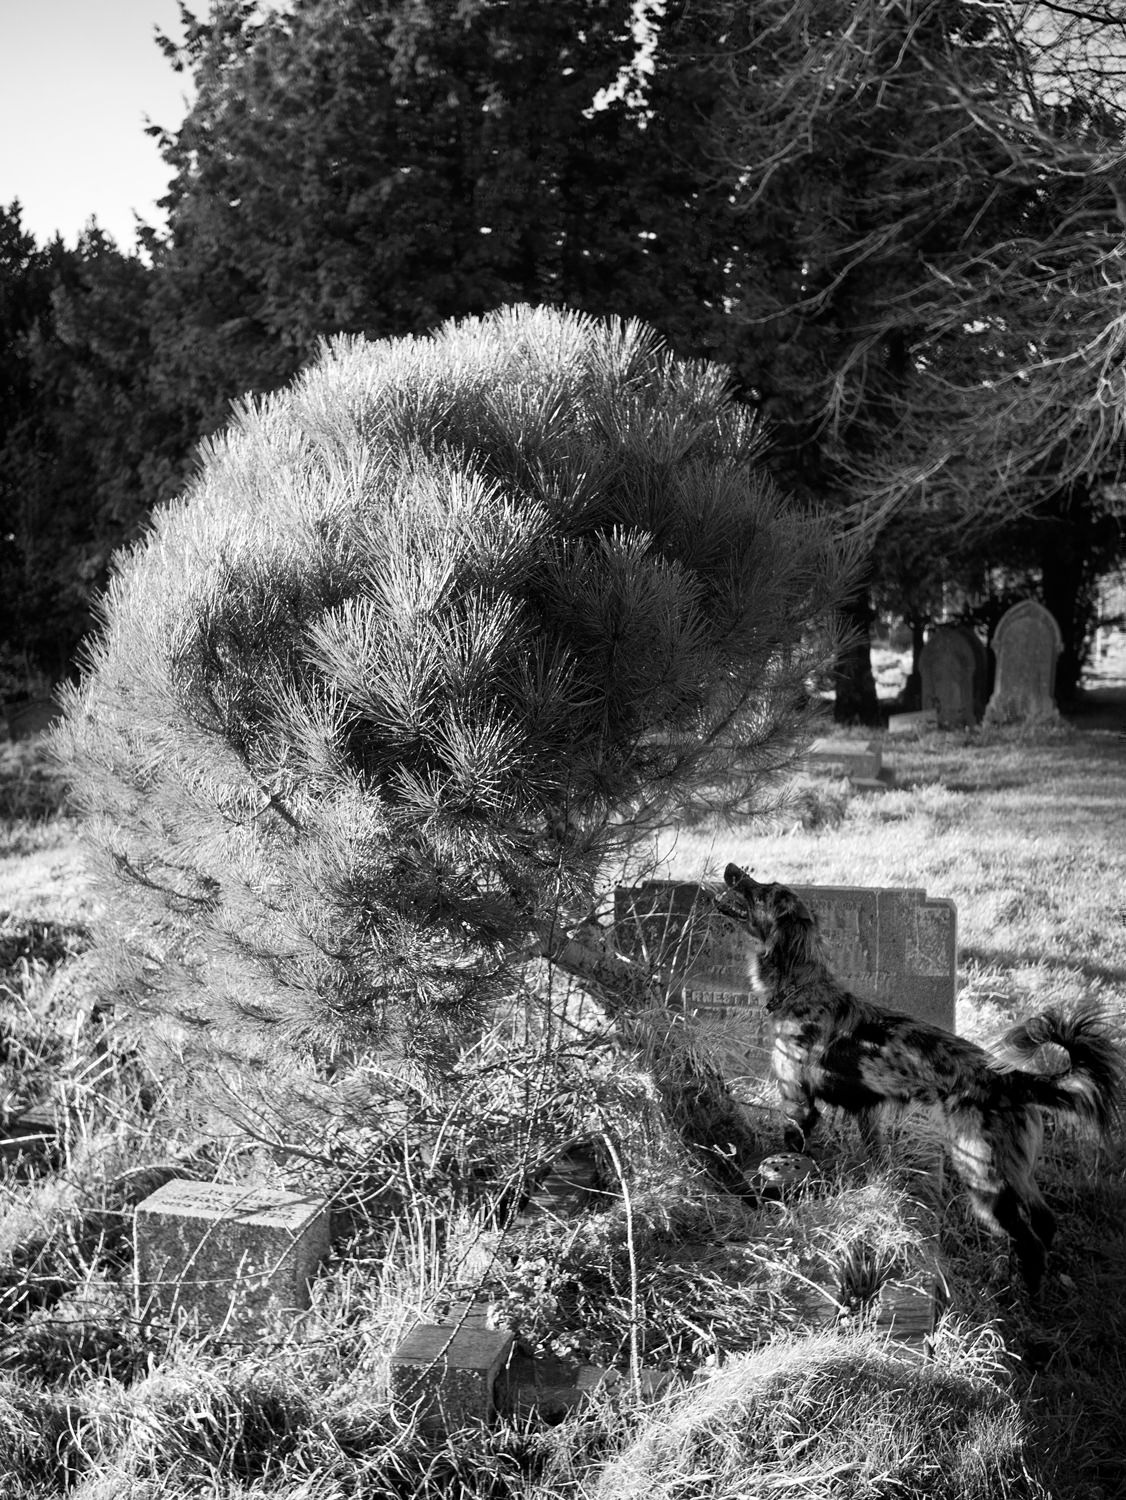 A dog is standing and staring intently into a small tree that's growing out of a grave